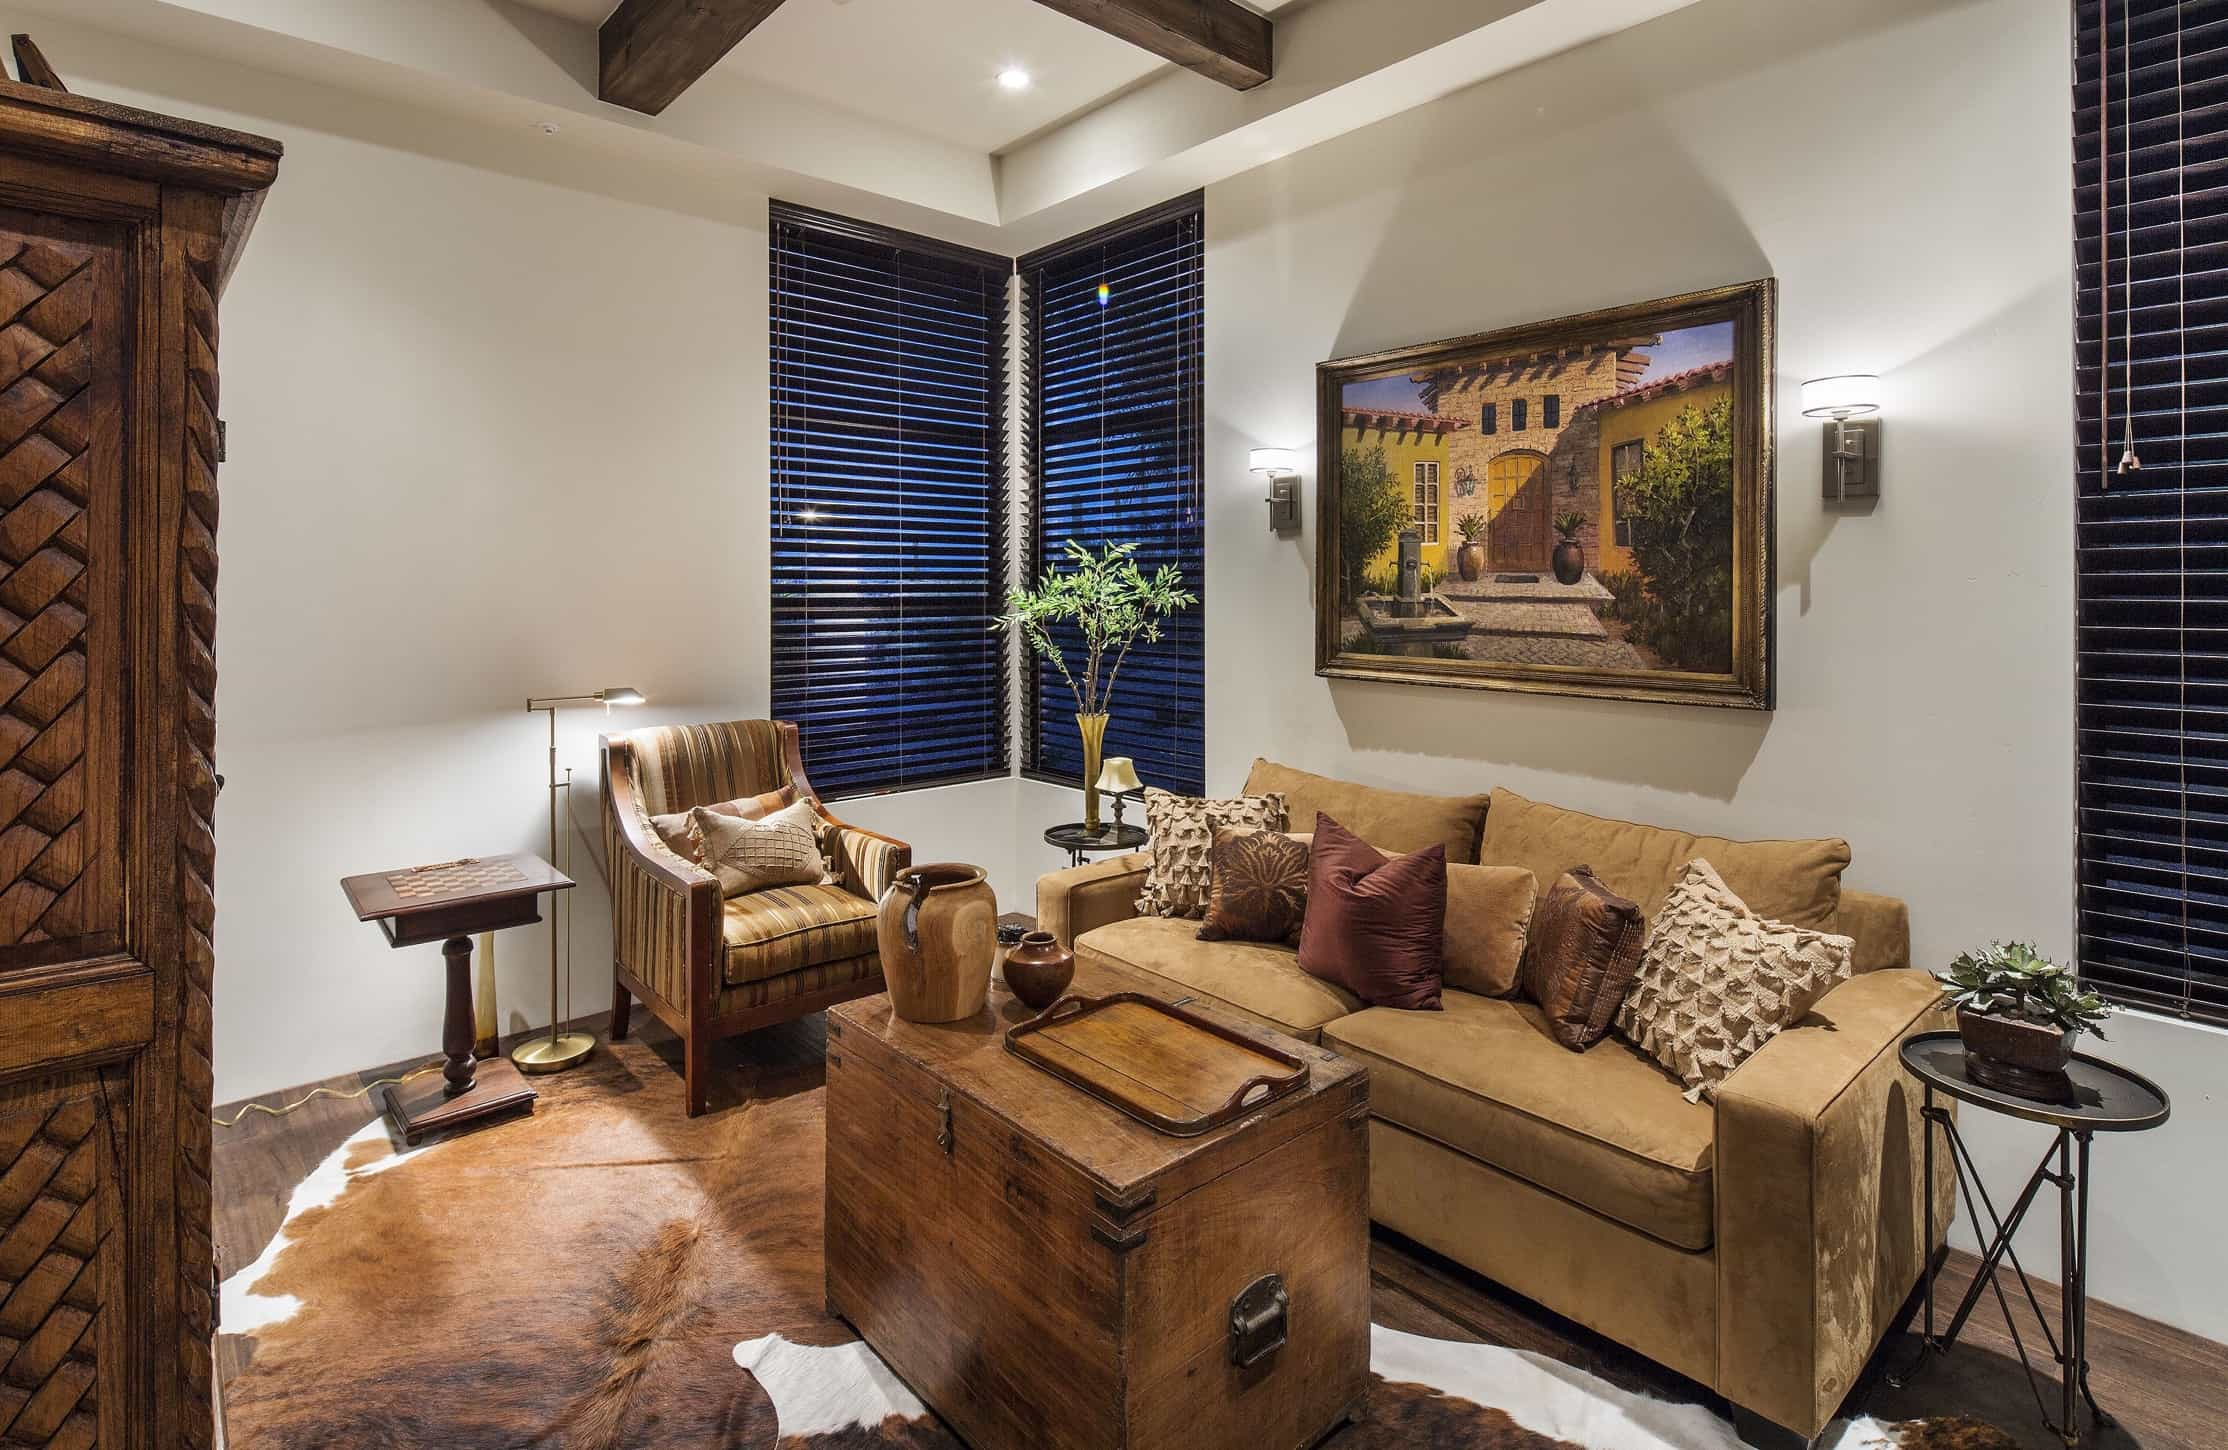 Featured Image of Comfy Southwestern Living Room With Tan Furniture And Cowhide Rug